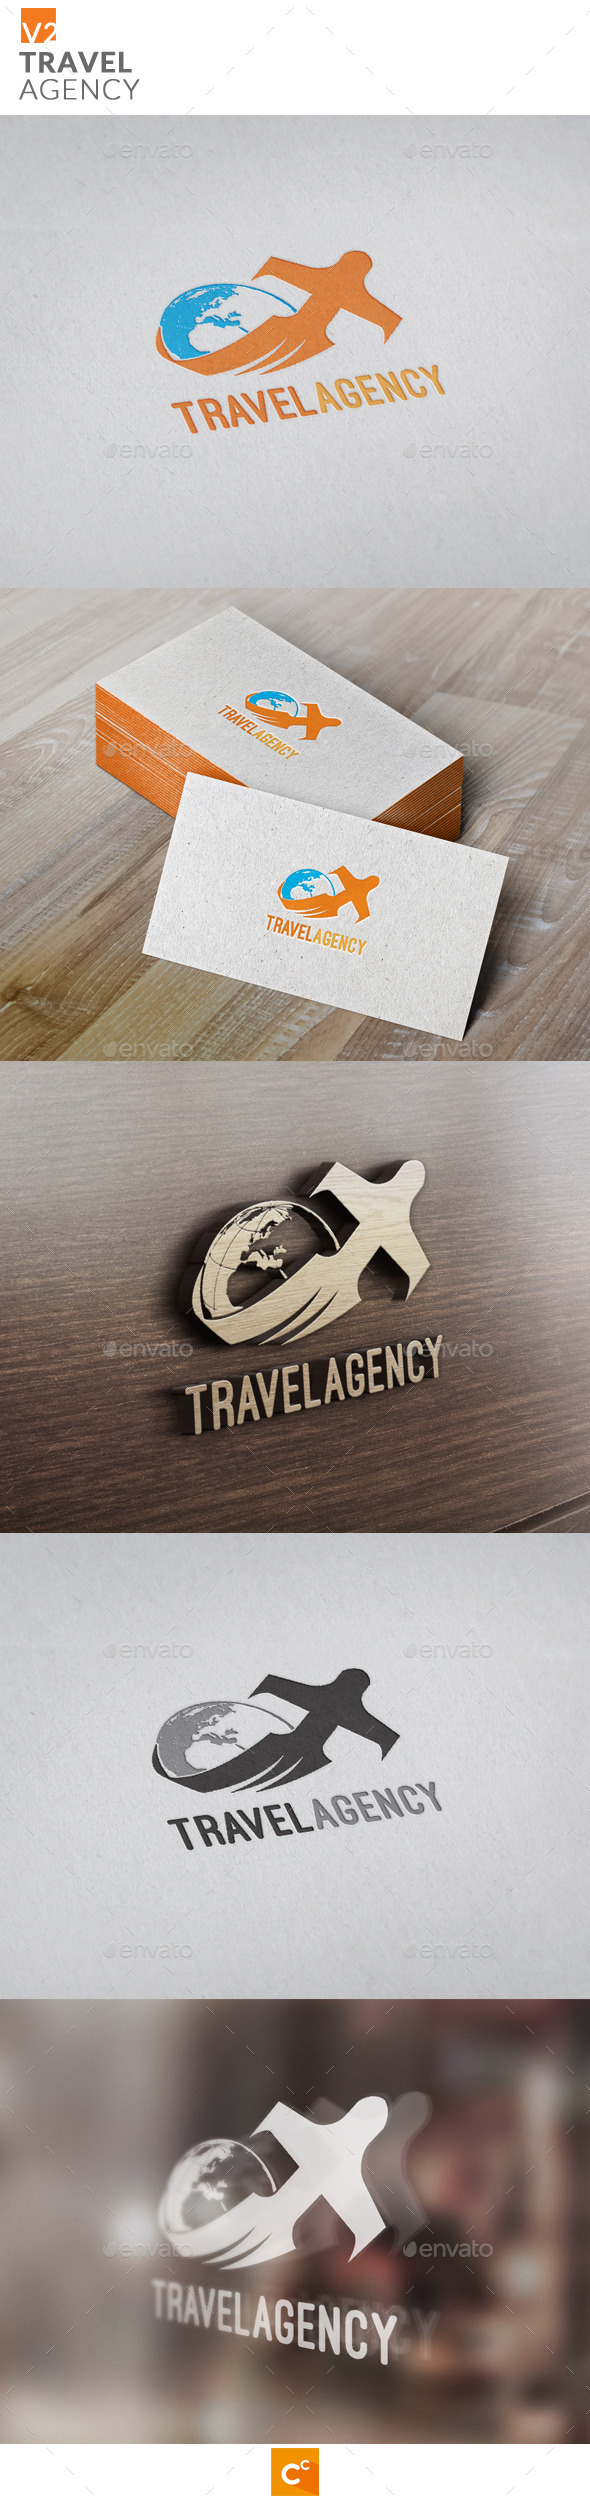 GraphicRiver Travel Agency v2 9207381